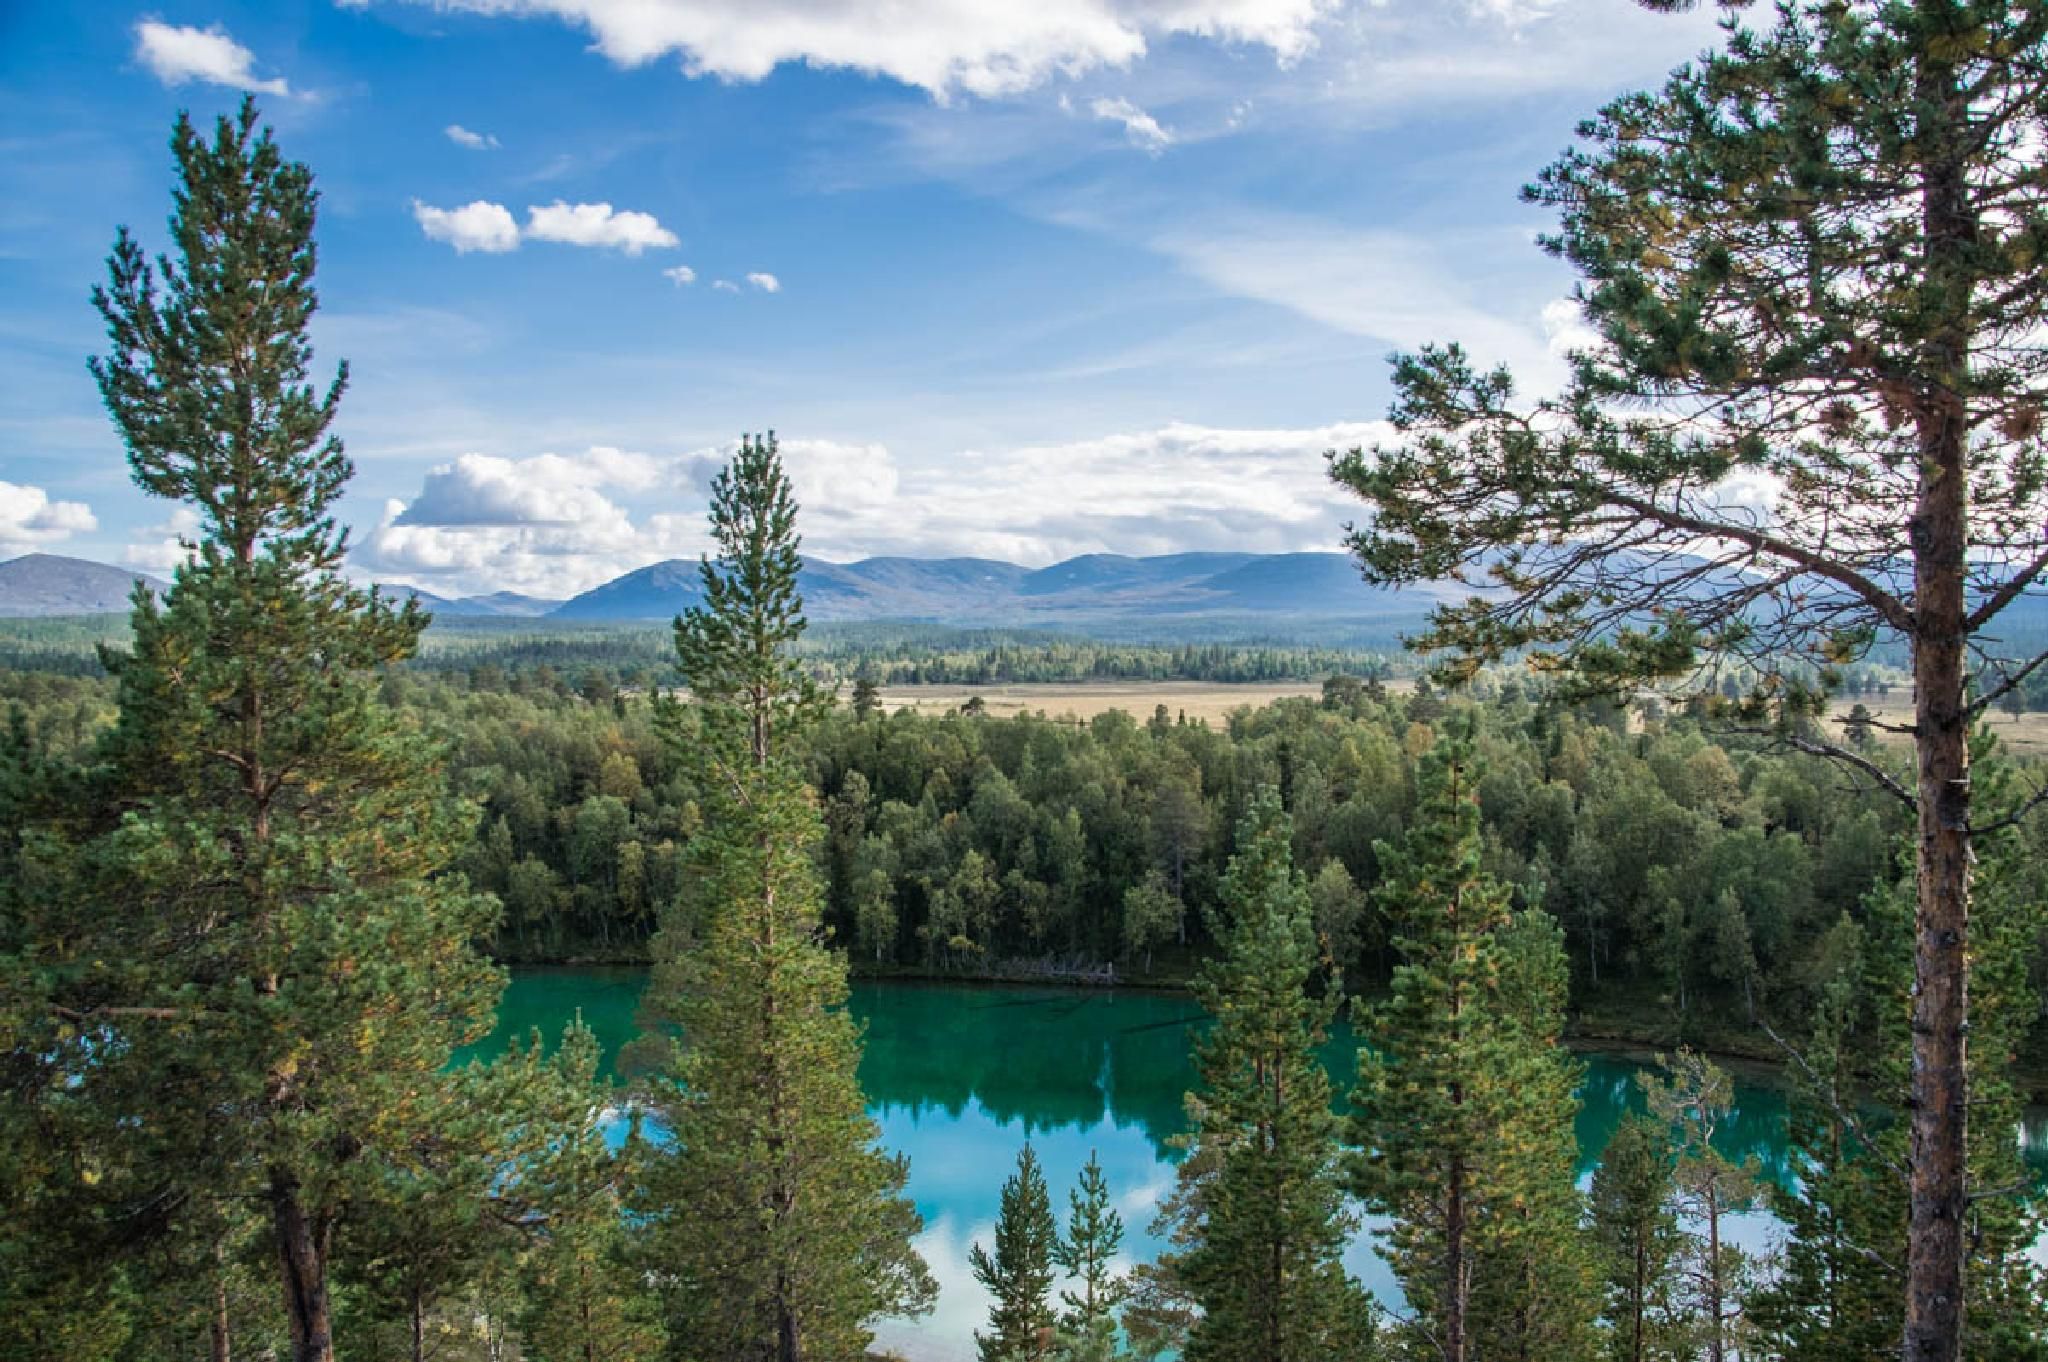 swedish mountains by gorber